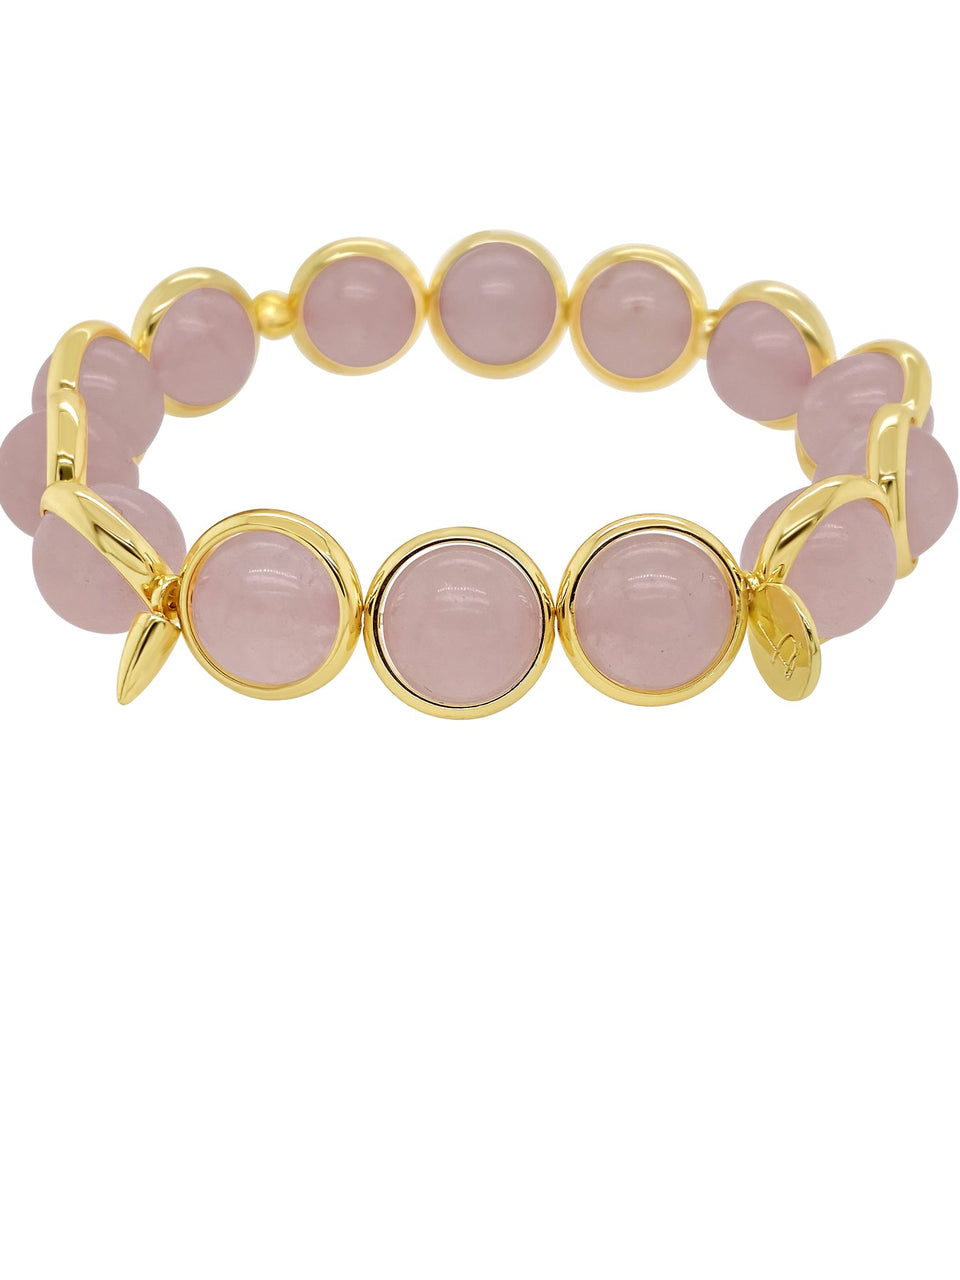 Mystic Rose Quartz Gemstone Bead Bracelet